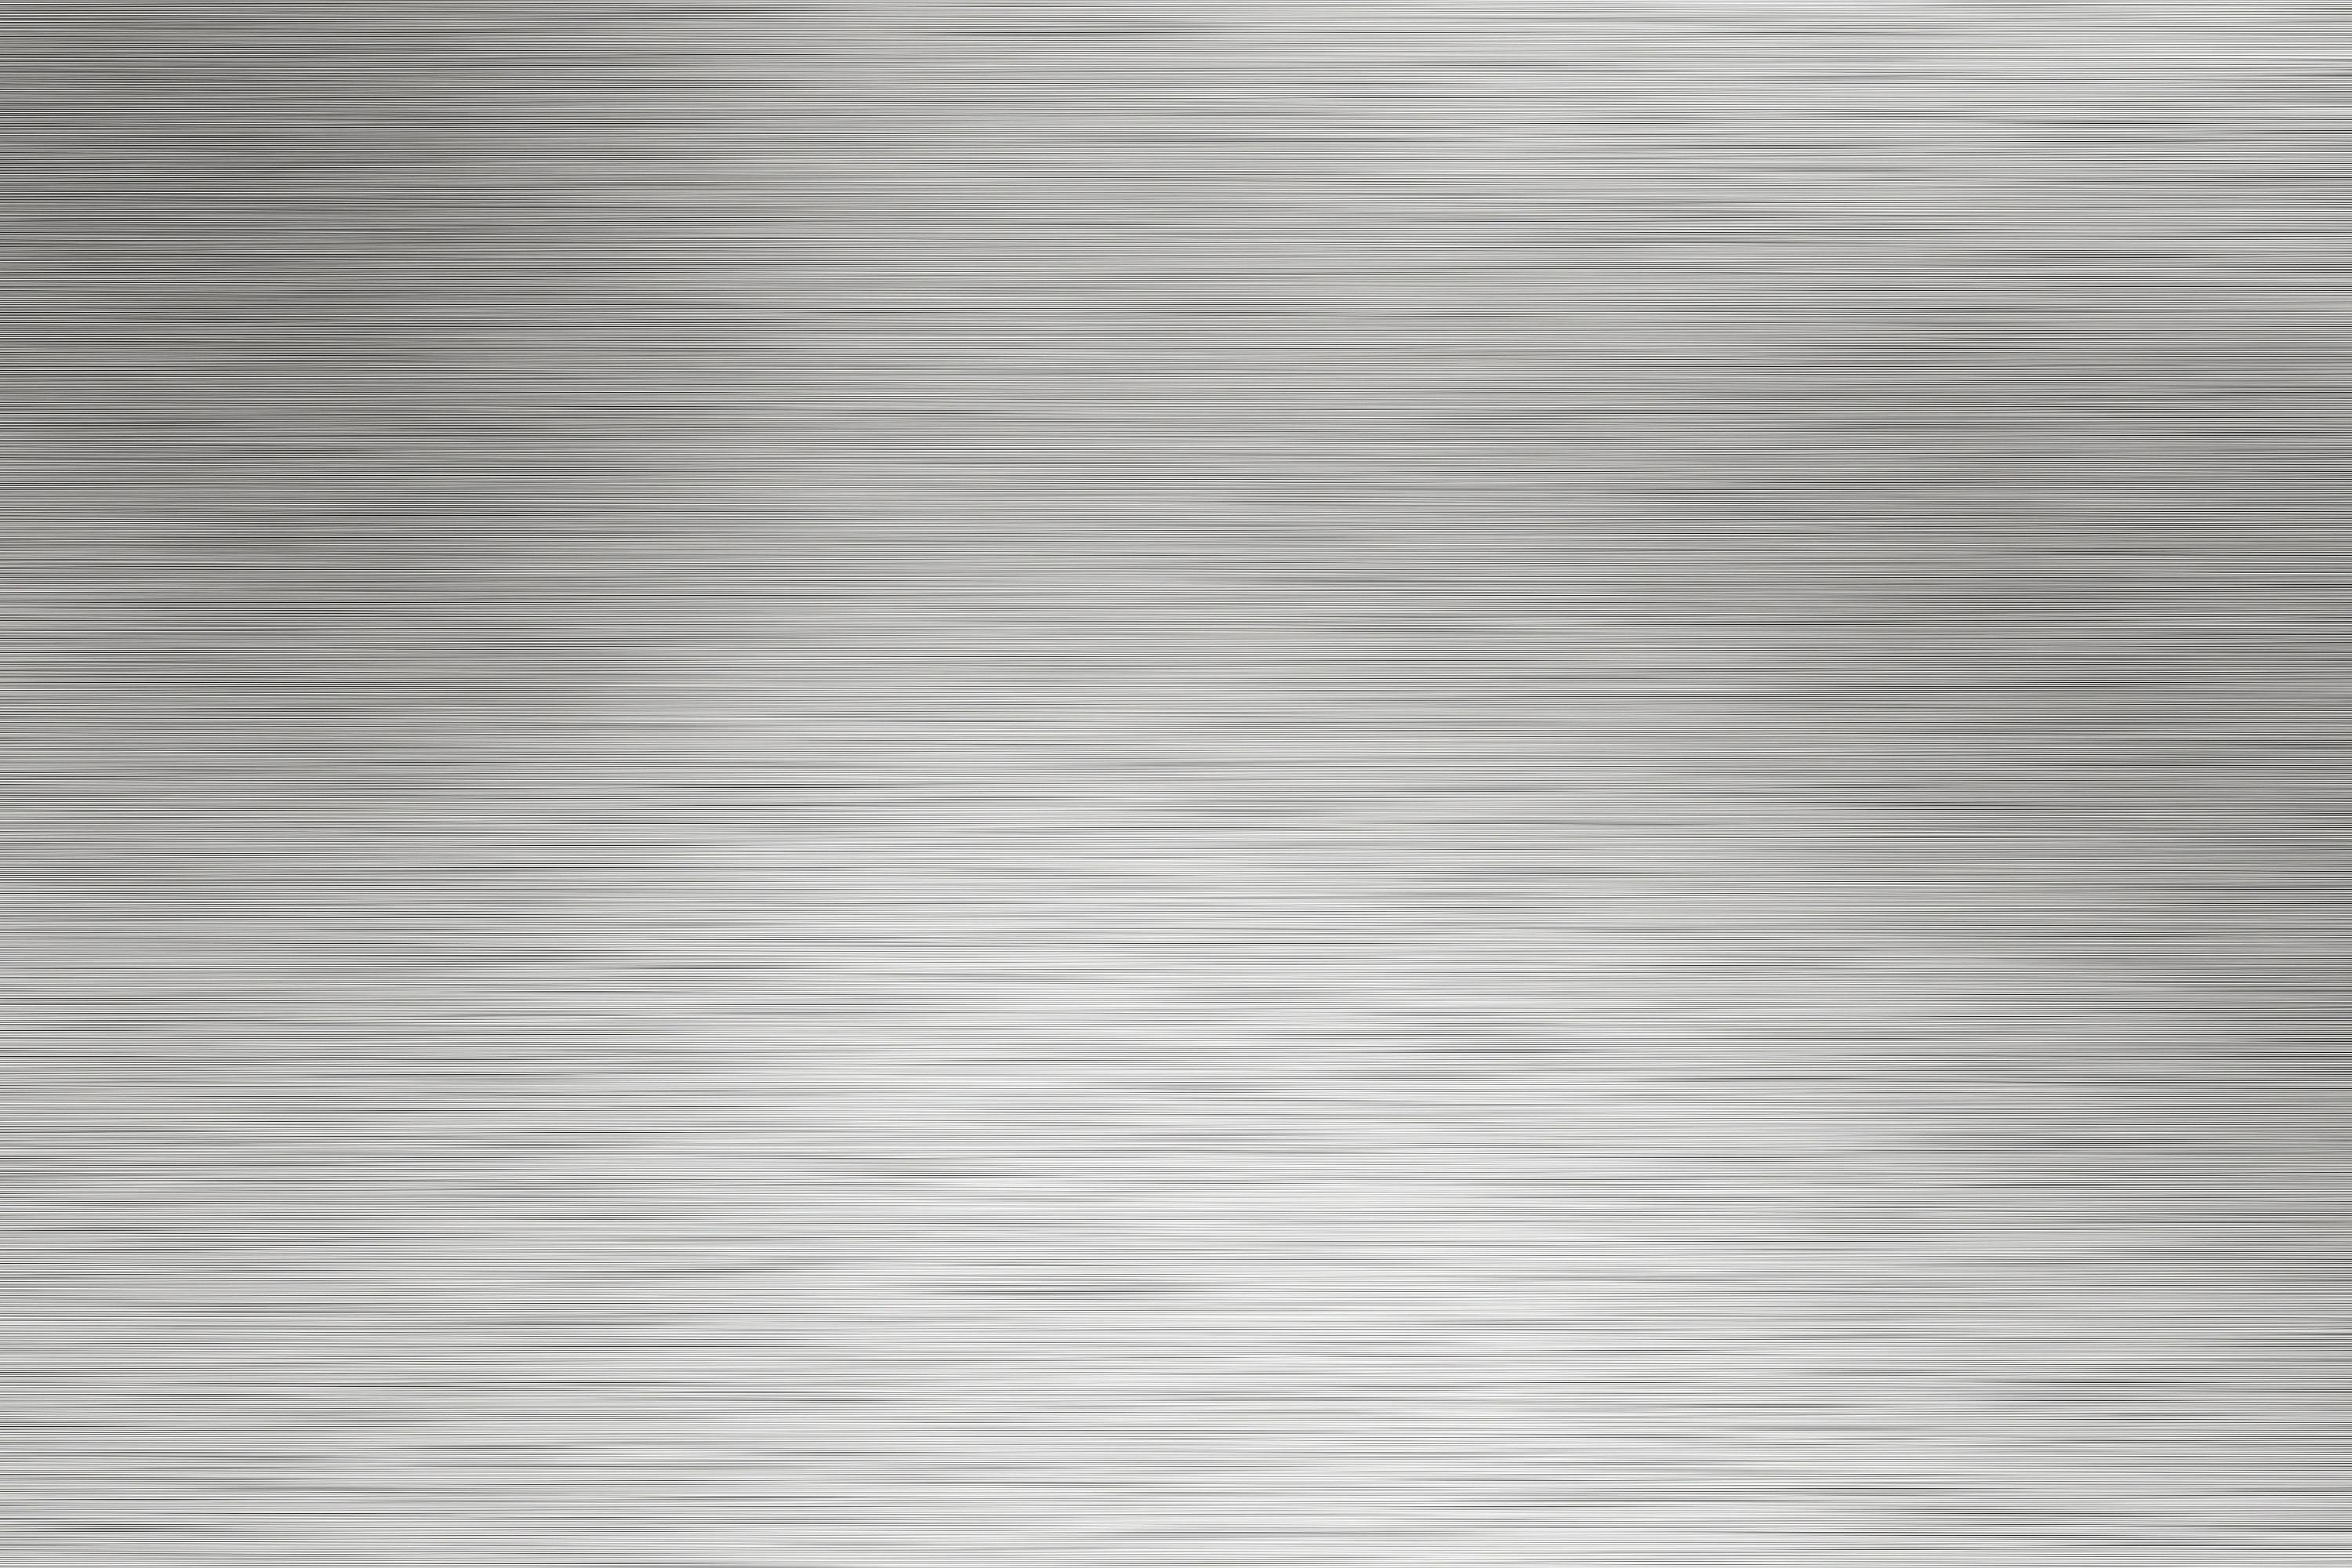 Silver Background Wallpaper